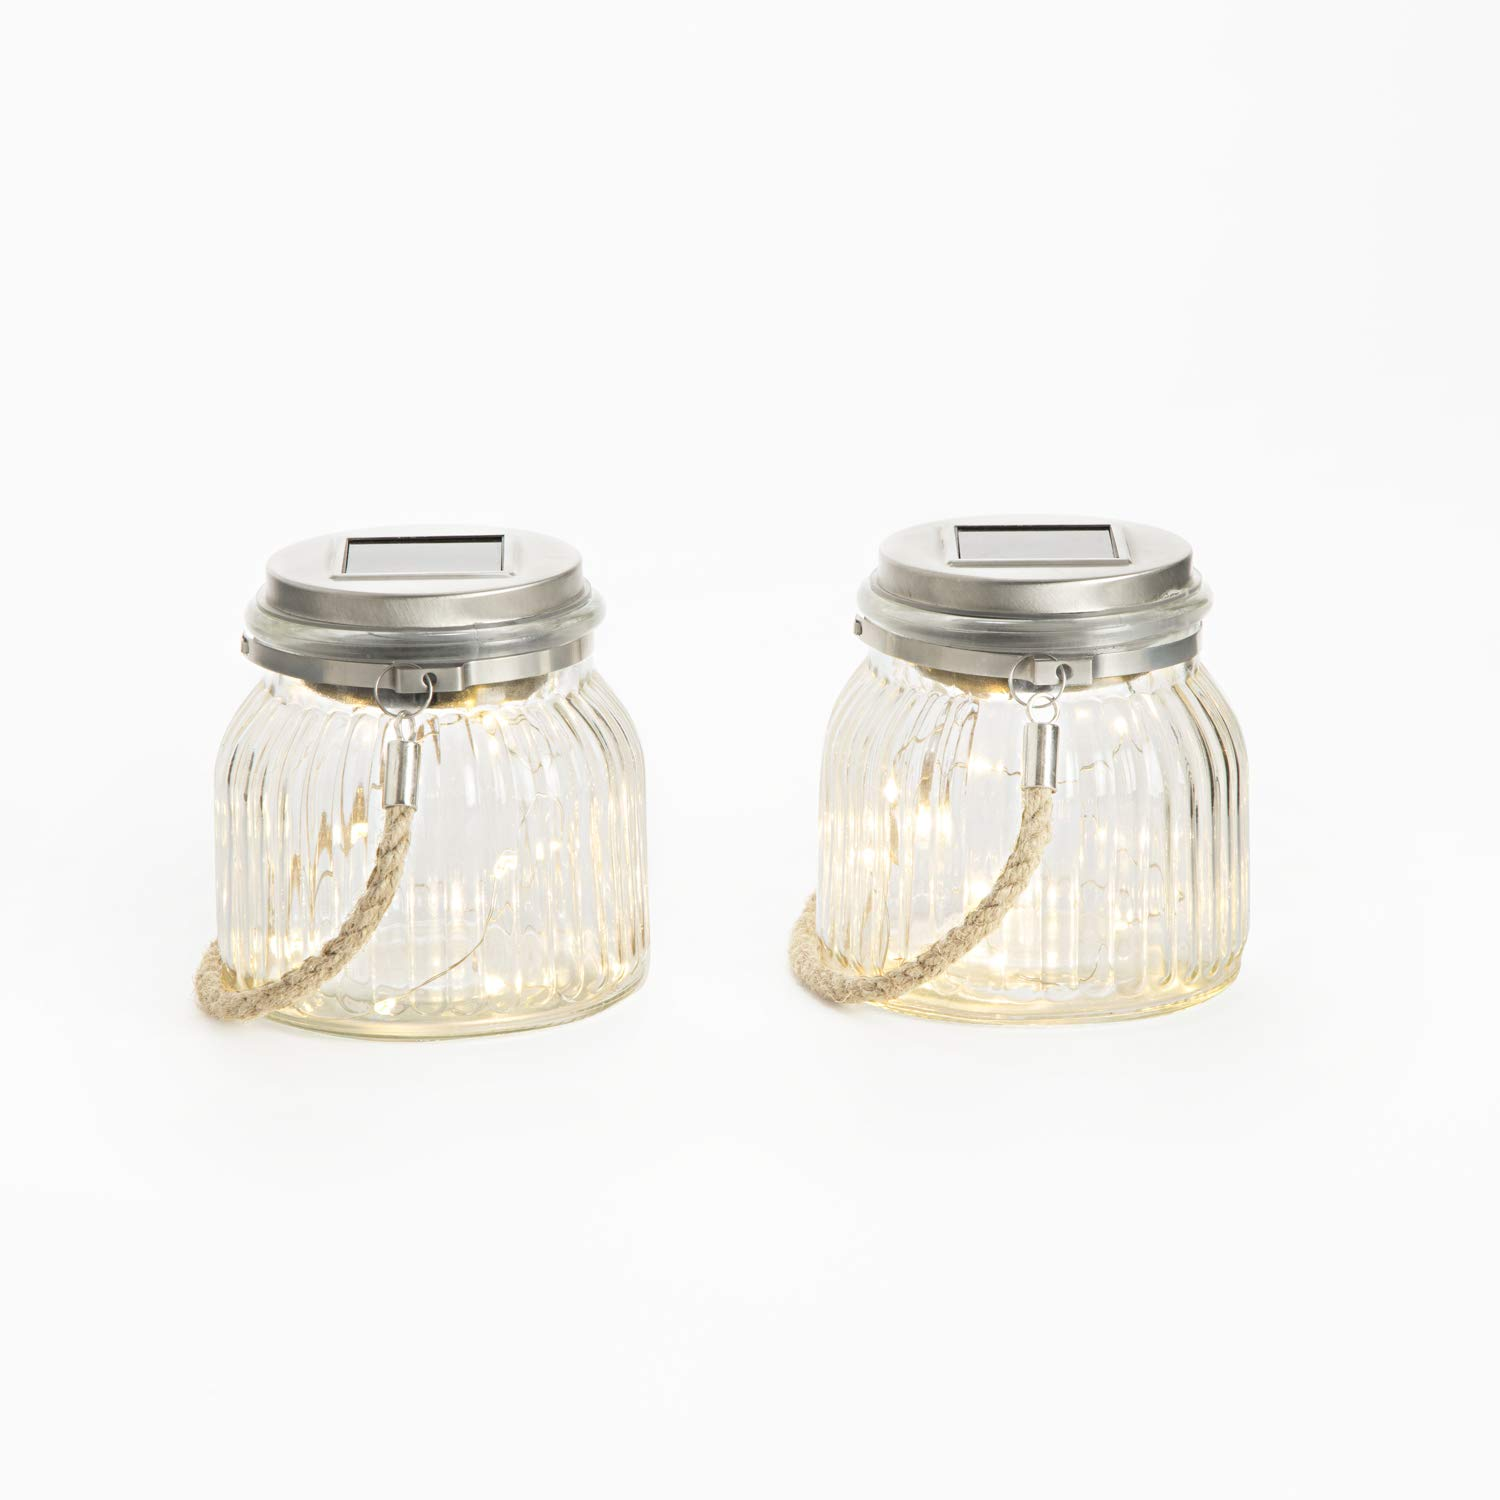 Solar Mason Jar Lights - Set of 2 Outdoor Firefly Lanterns with 40 Warm White LED Fairy Lights, Built-in Solar Panels in Lid, Complete Lighted Decor Kit, Batteries Included